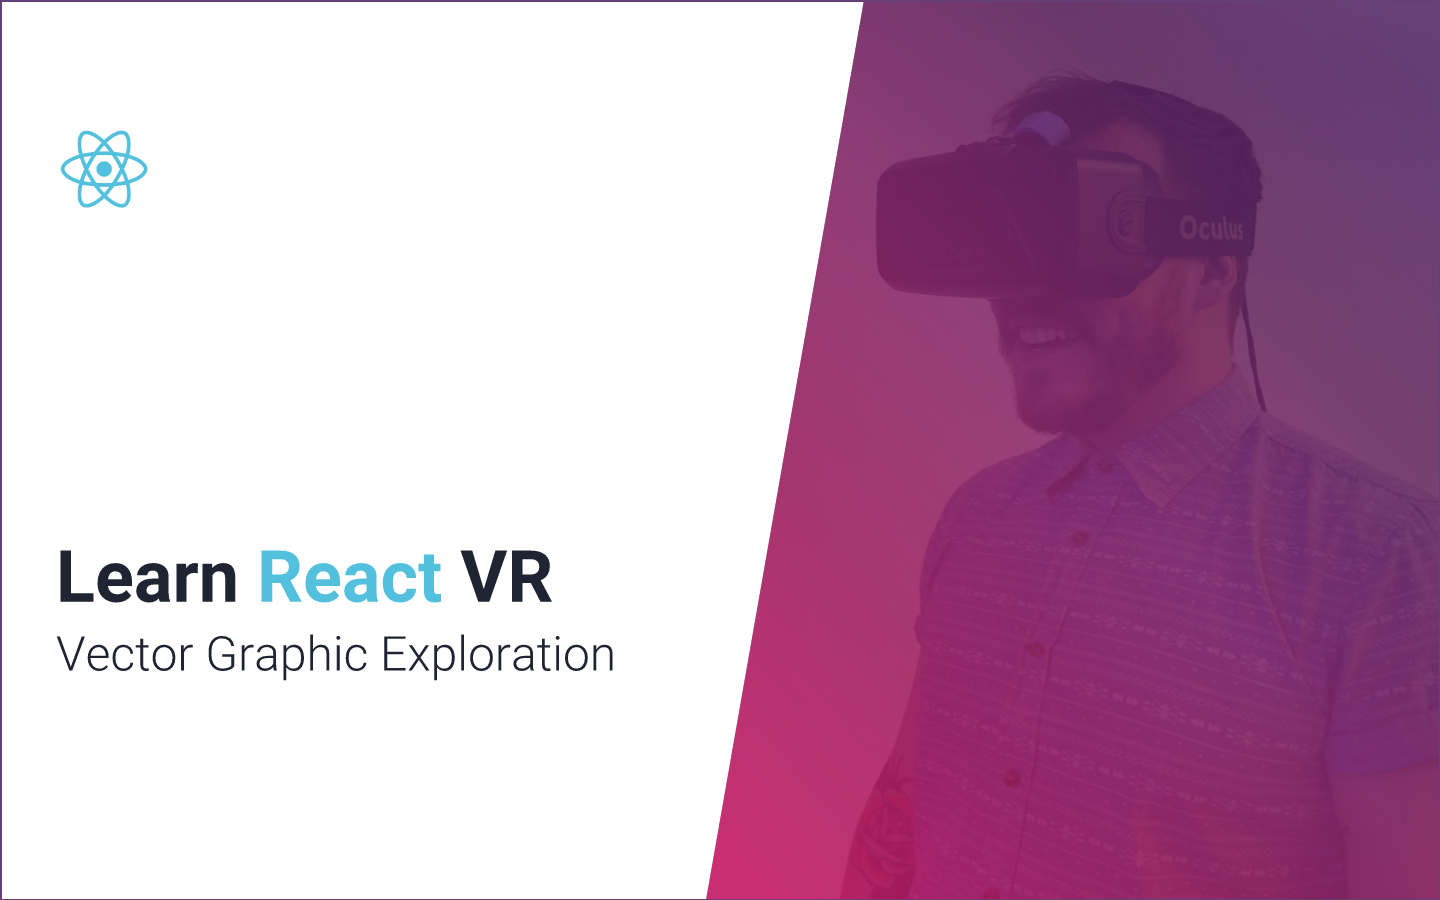 Learn React VR (Chapter 6 | Vector Graphic Exploration)